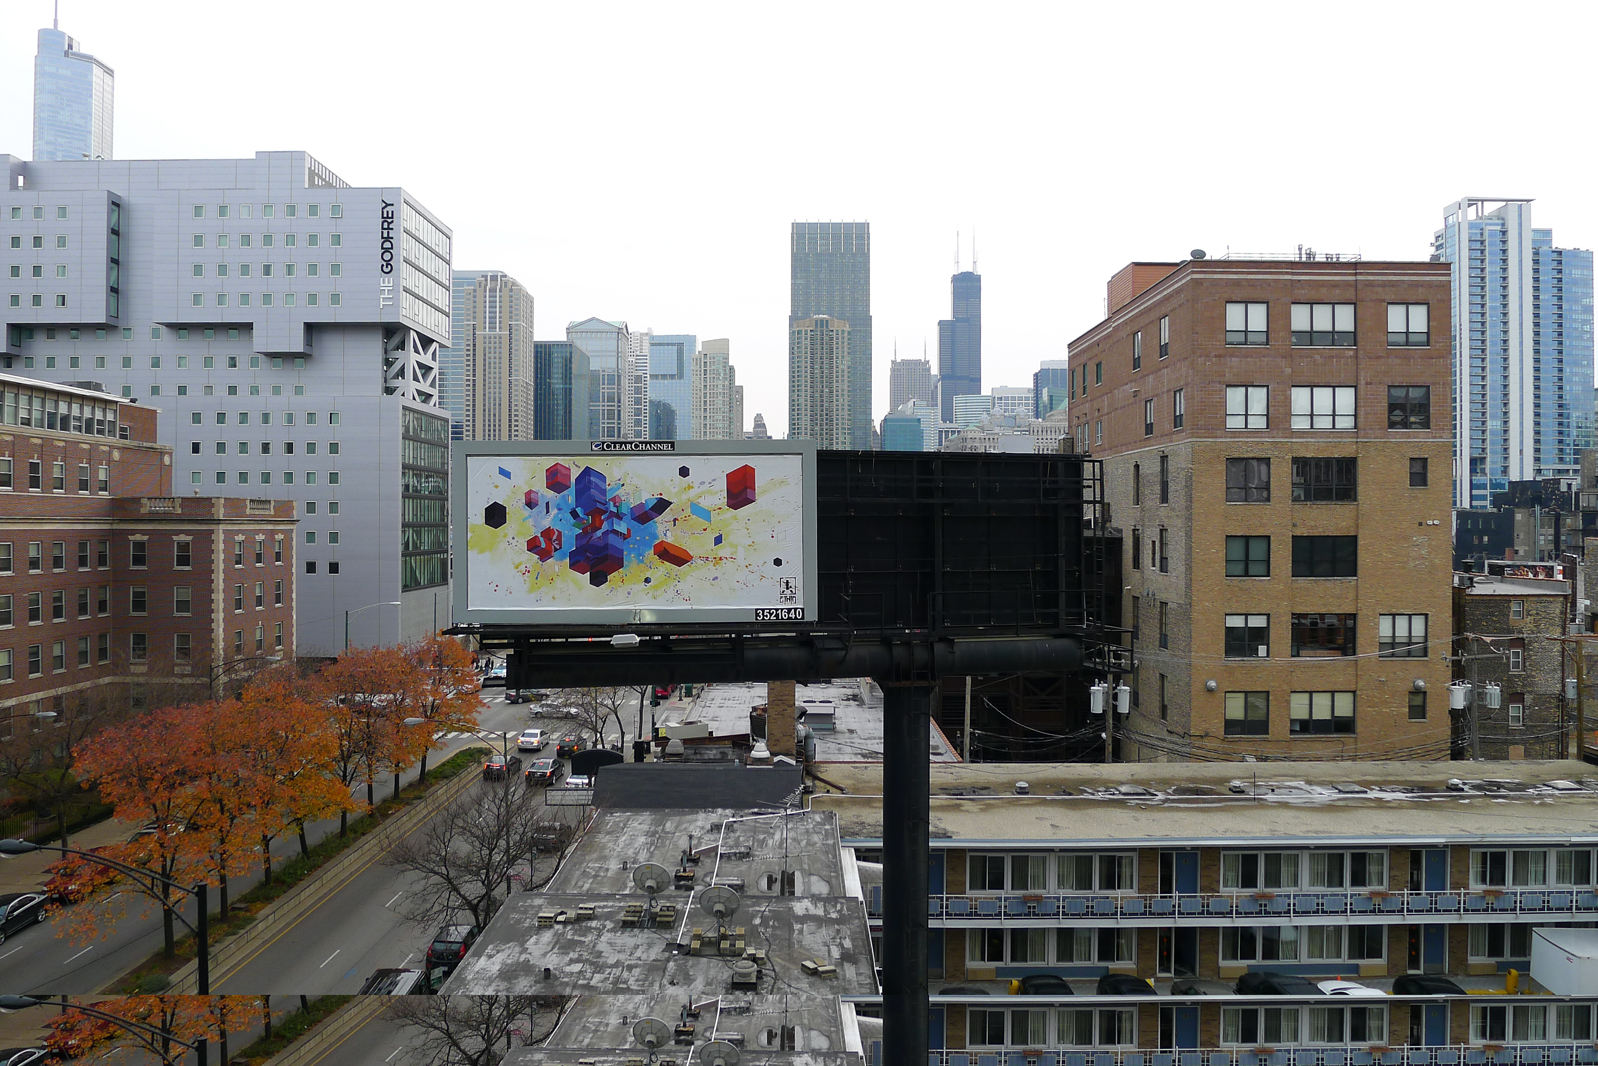 etnik-new-billboard-in-chicago-usa-03